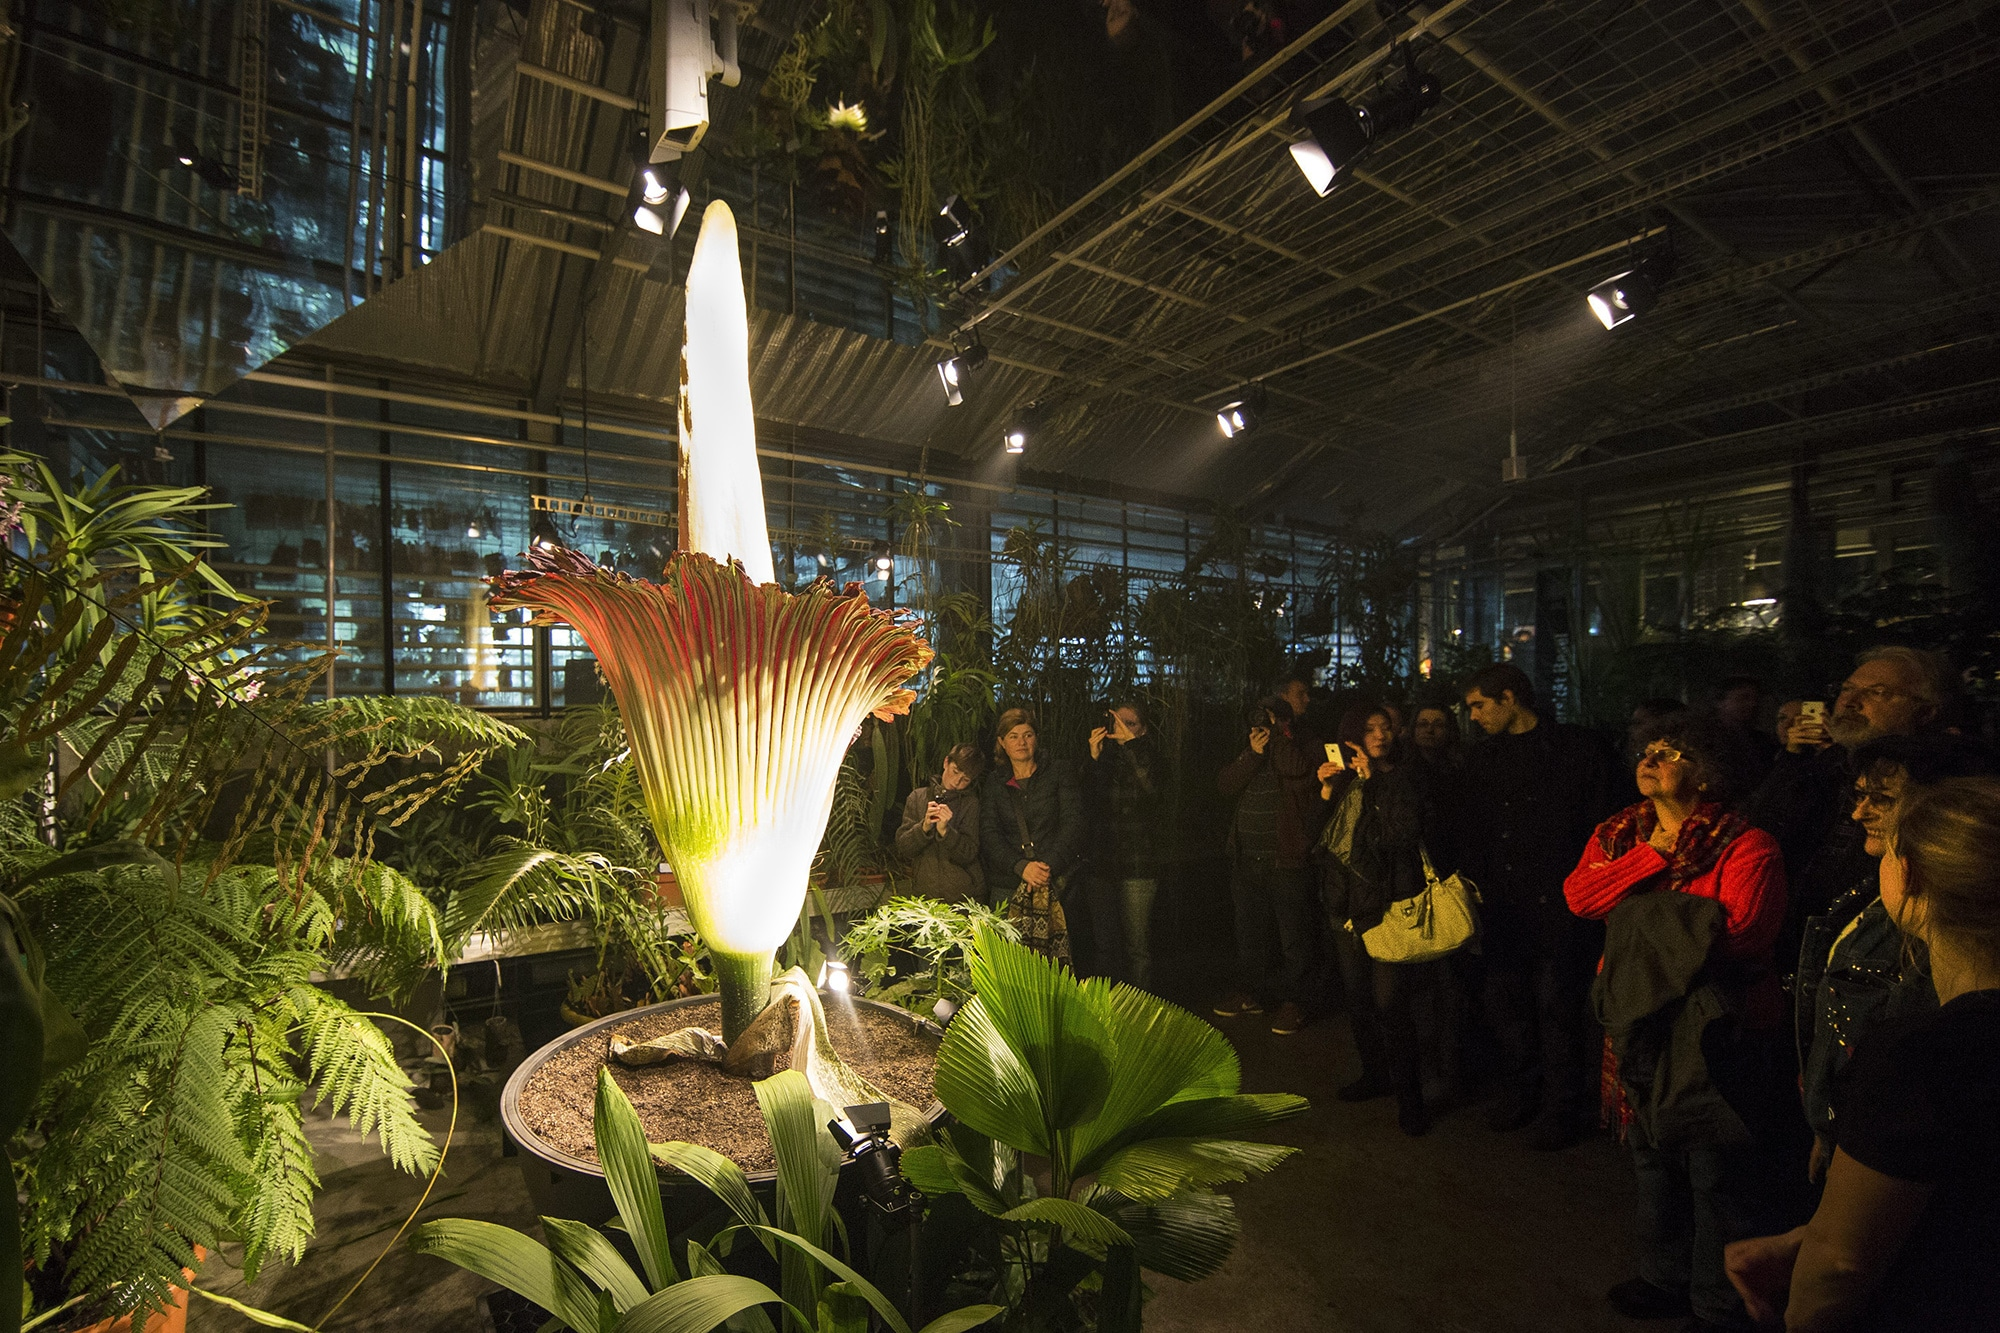 Visitors look at a blooming Titan Arum (amorphophallus titanum) in the botanical garden of the university of Basel, in Basel,